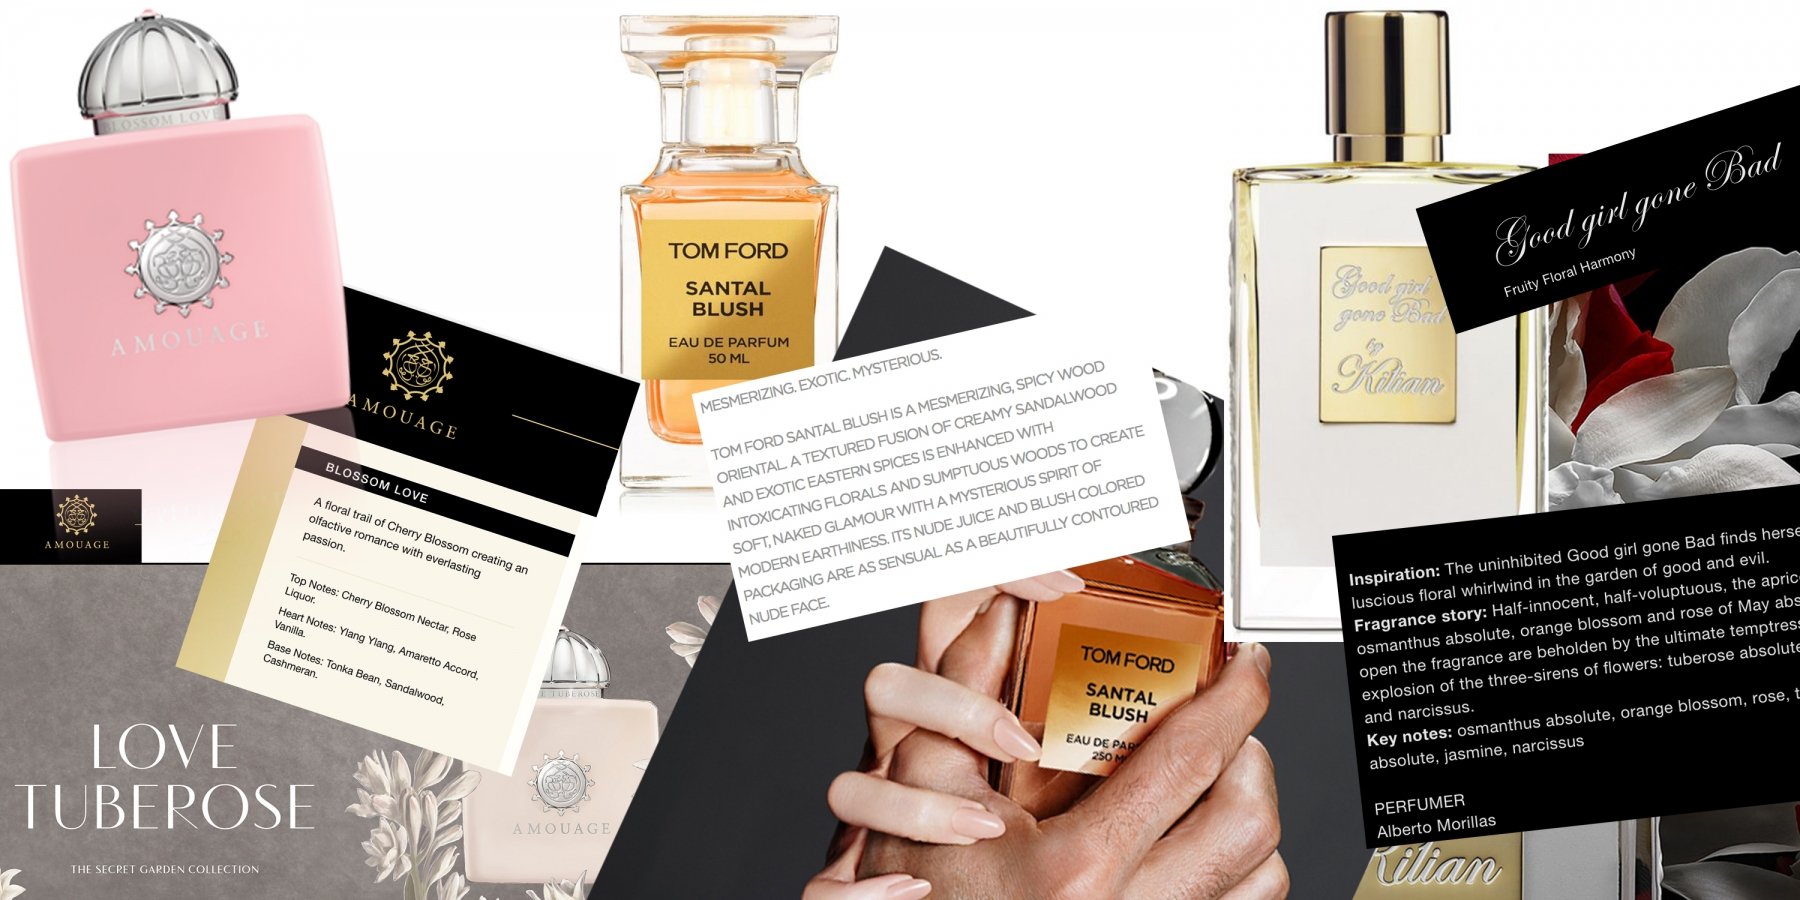 Parfume Matches Your Personal Style theodivo.com.jpg